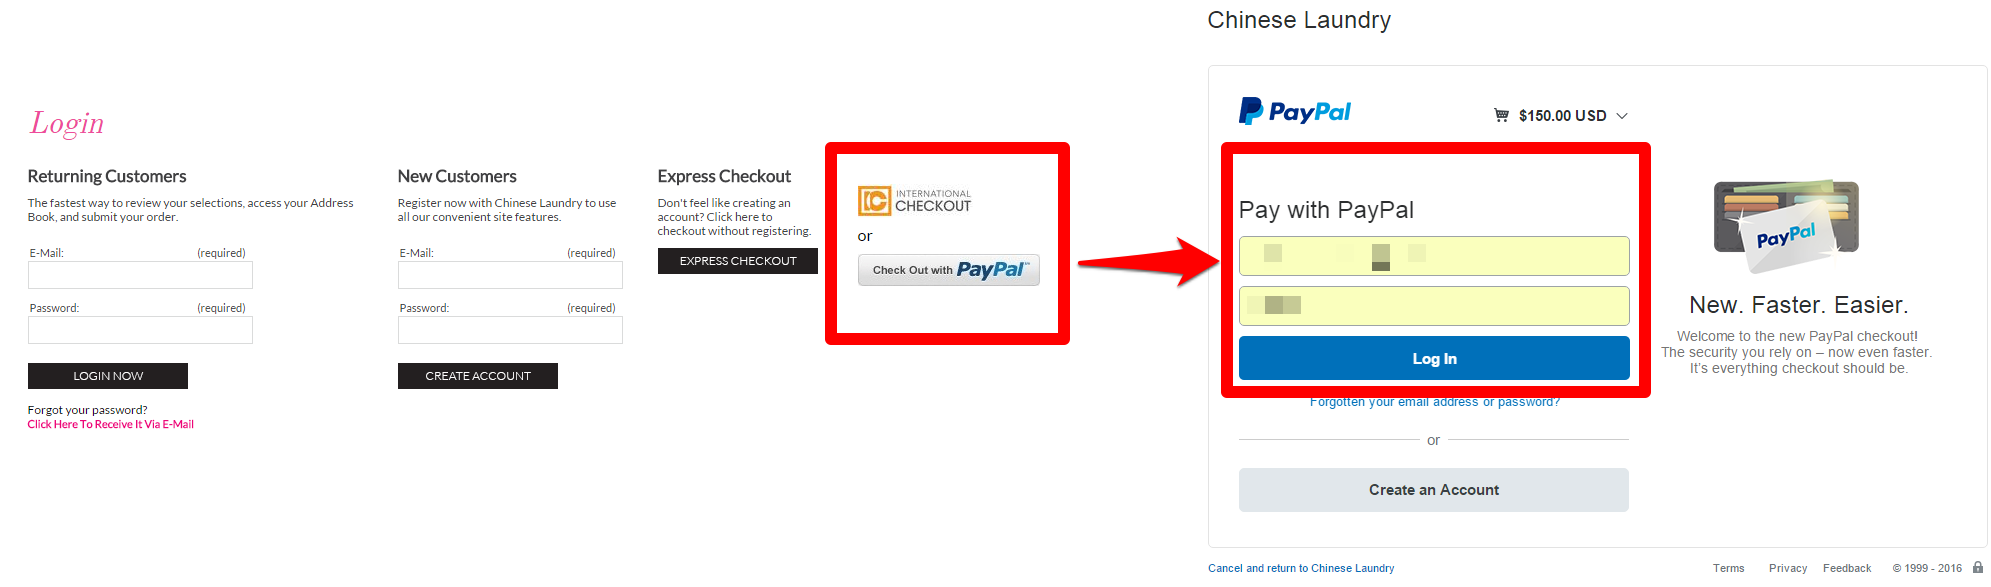 Payment Gateway on the Site scheme